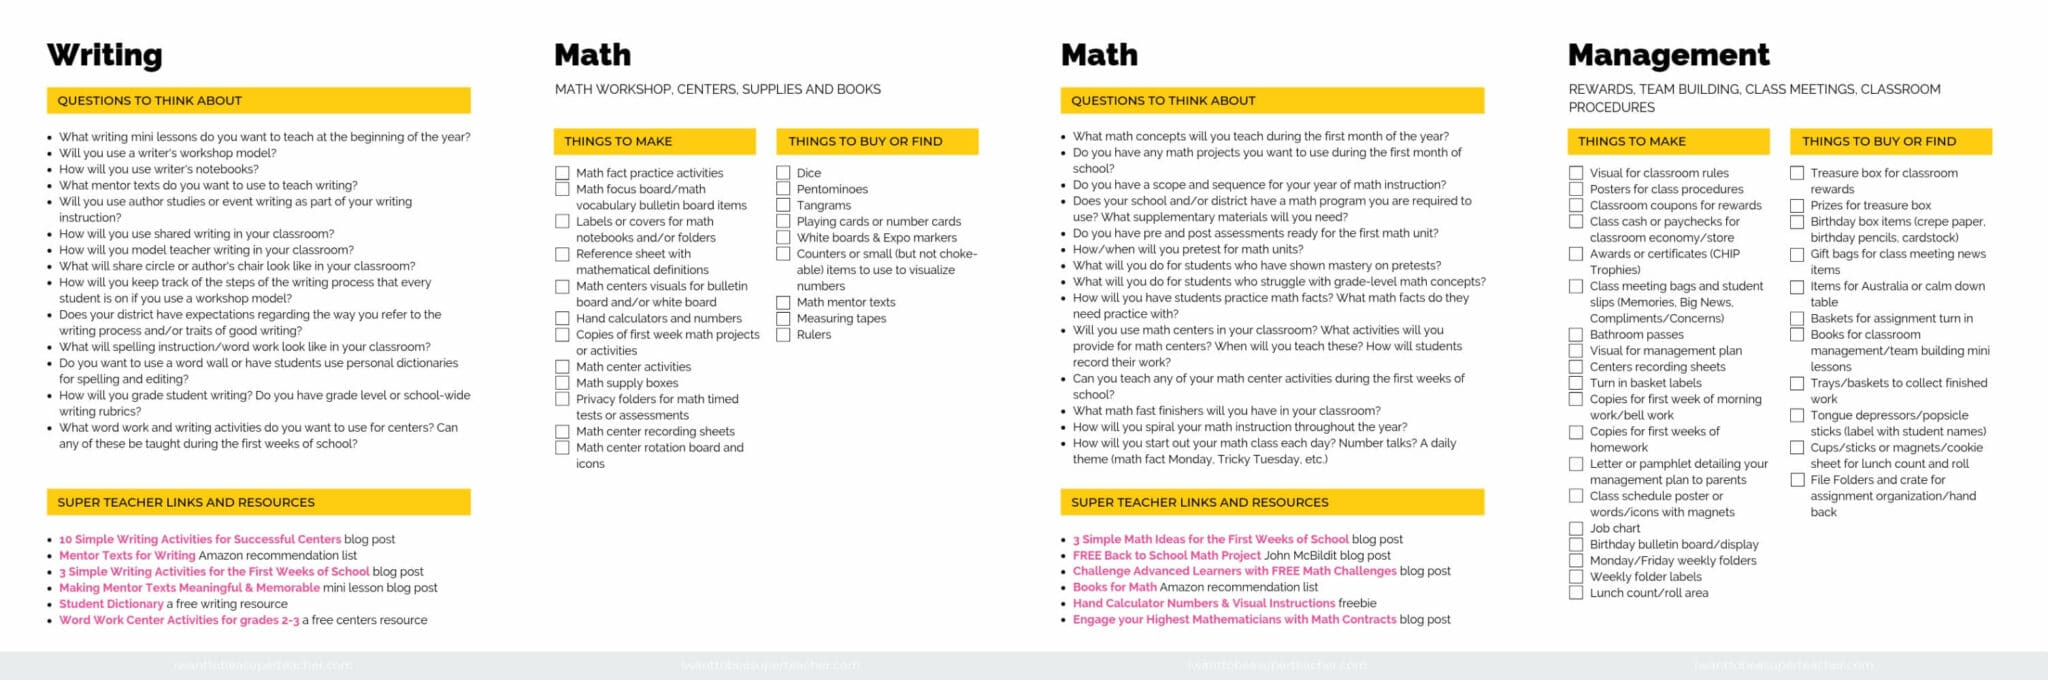 Classroom setup pages for writing, math, and managment